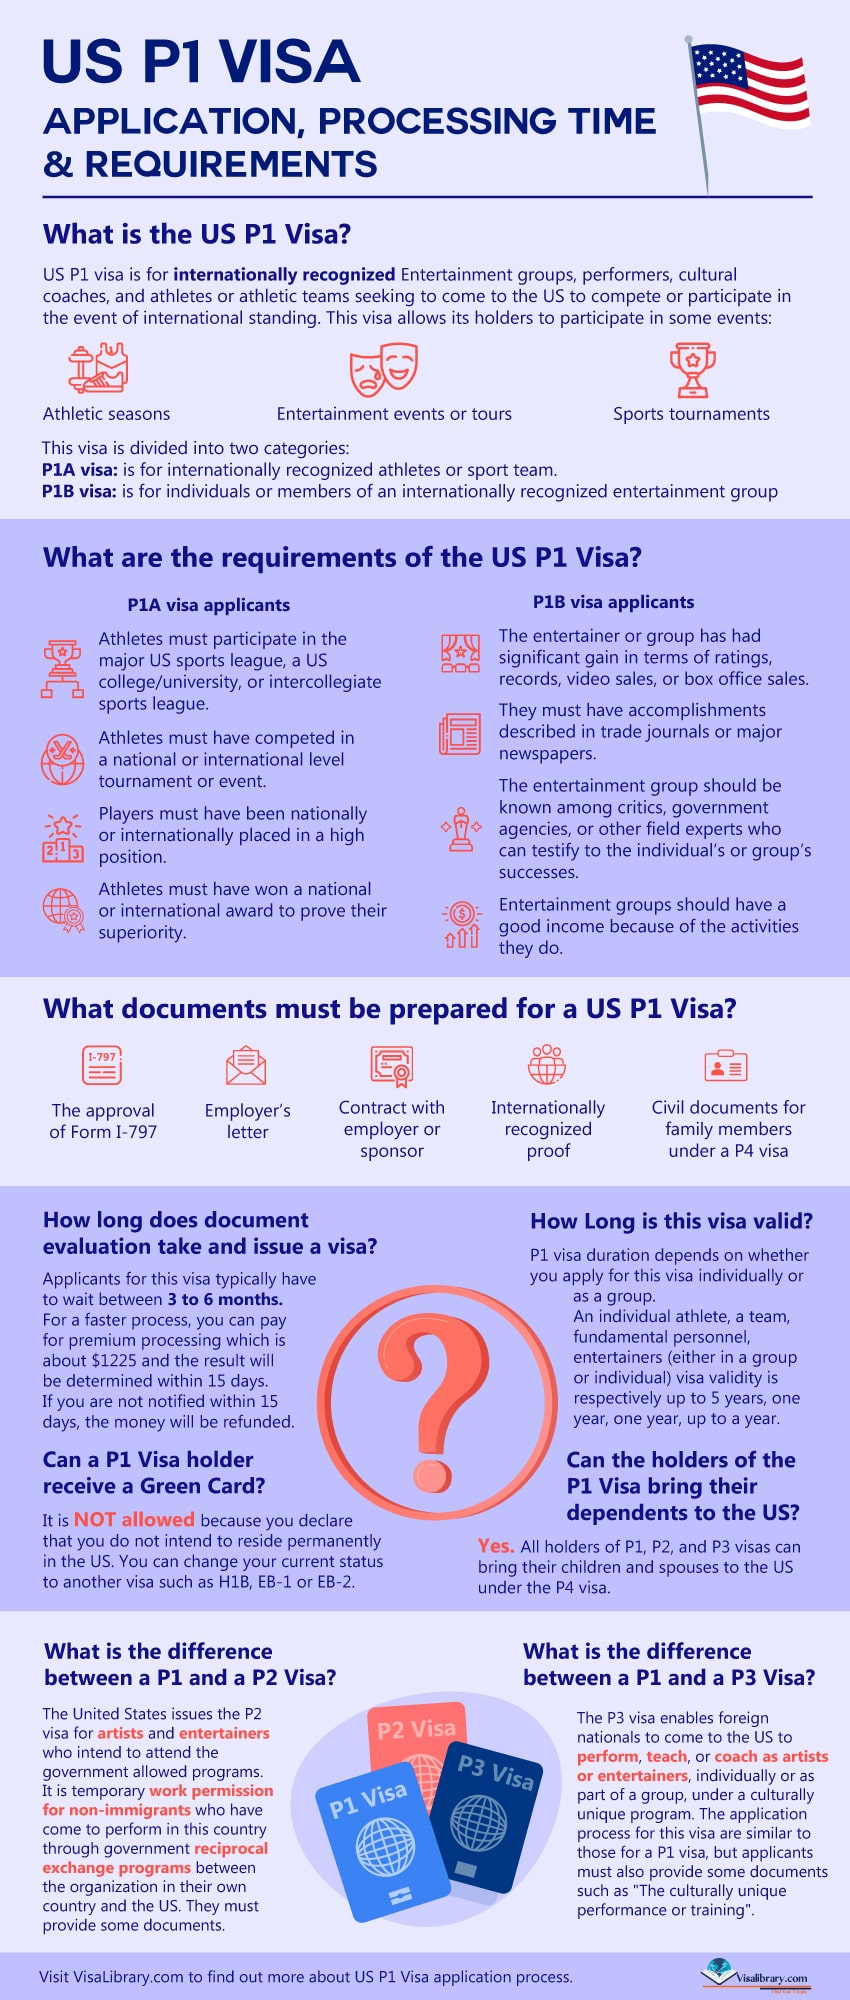 Infographic US P1 Visa Application, Processing Time & Requirements